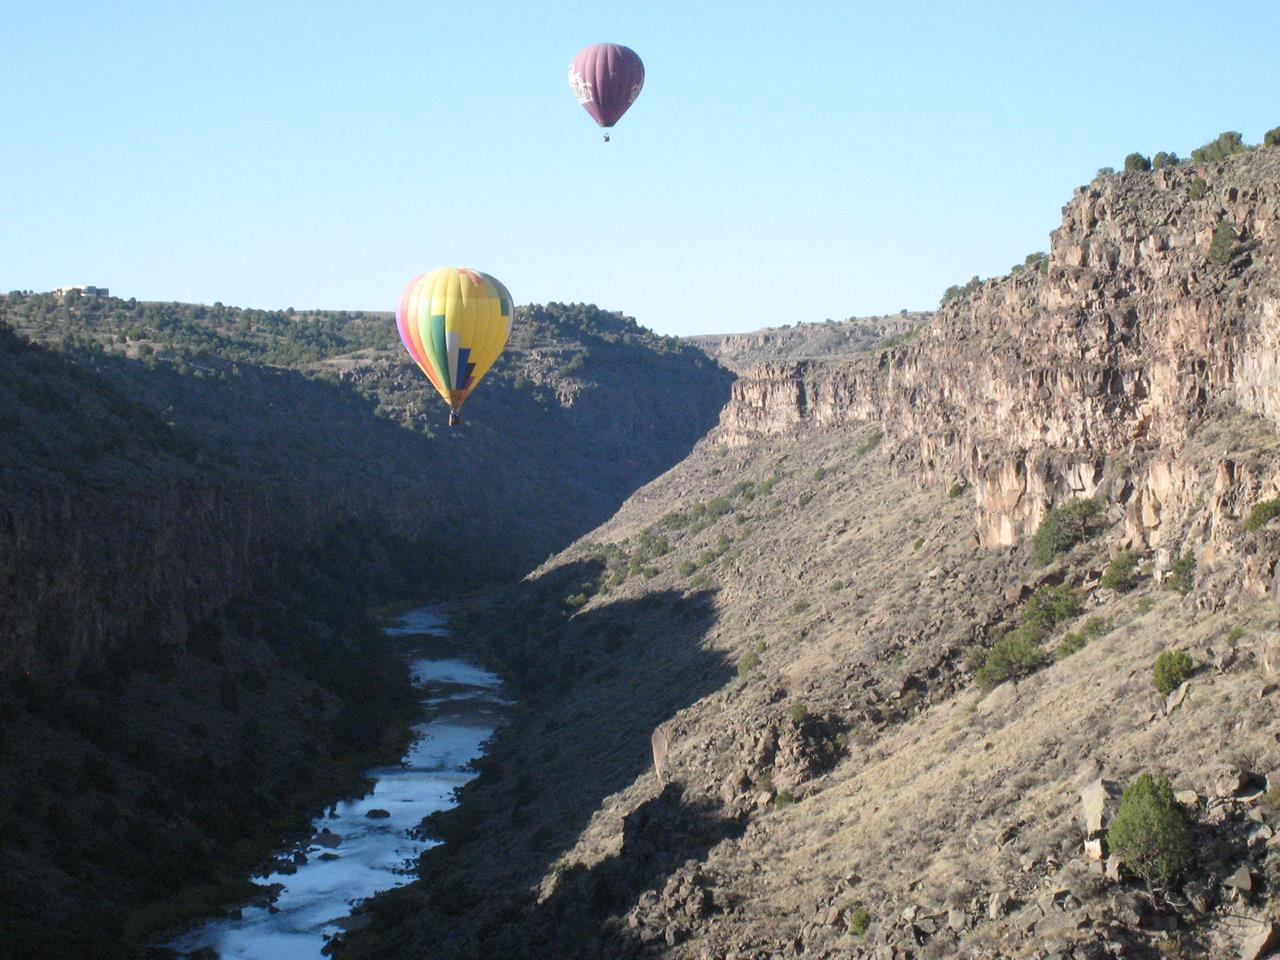 #Taos recreation #hot air balloons #Rio Grande Gorge #Taos #New Mexio